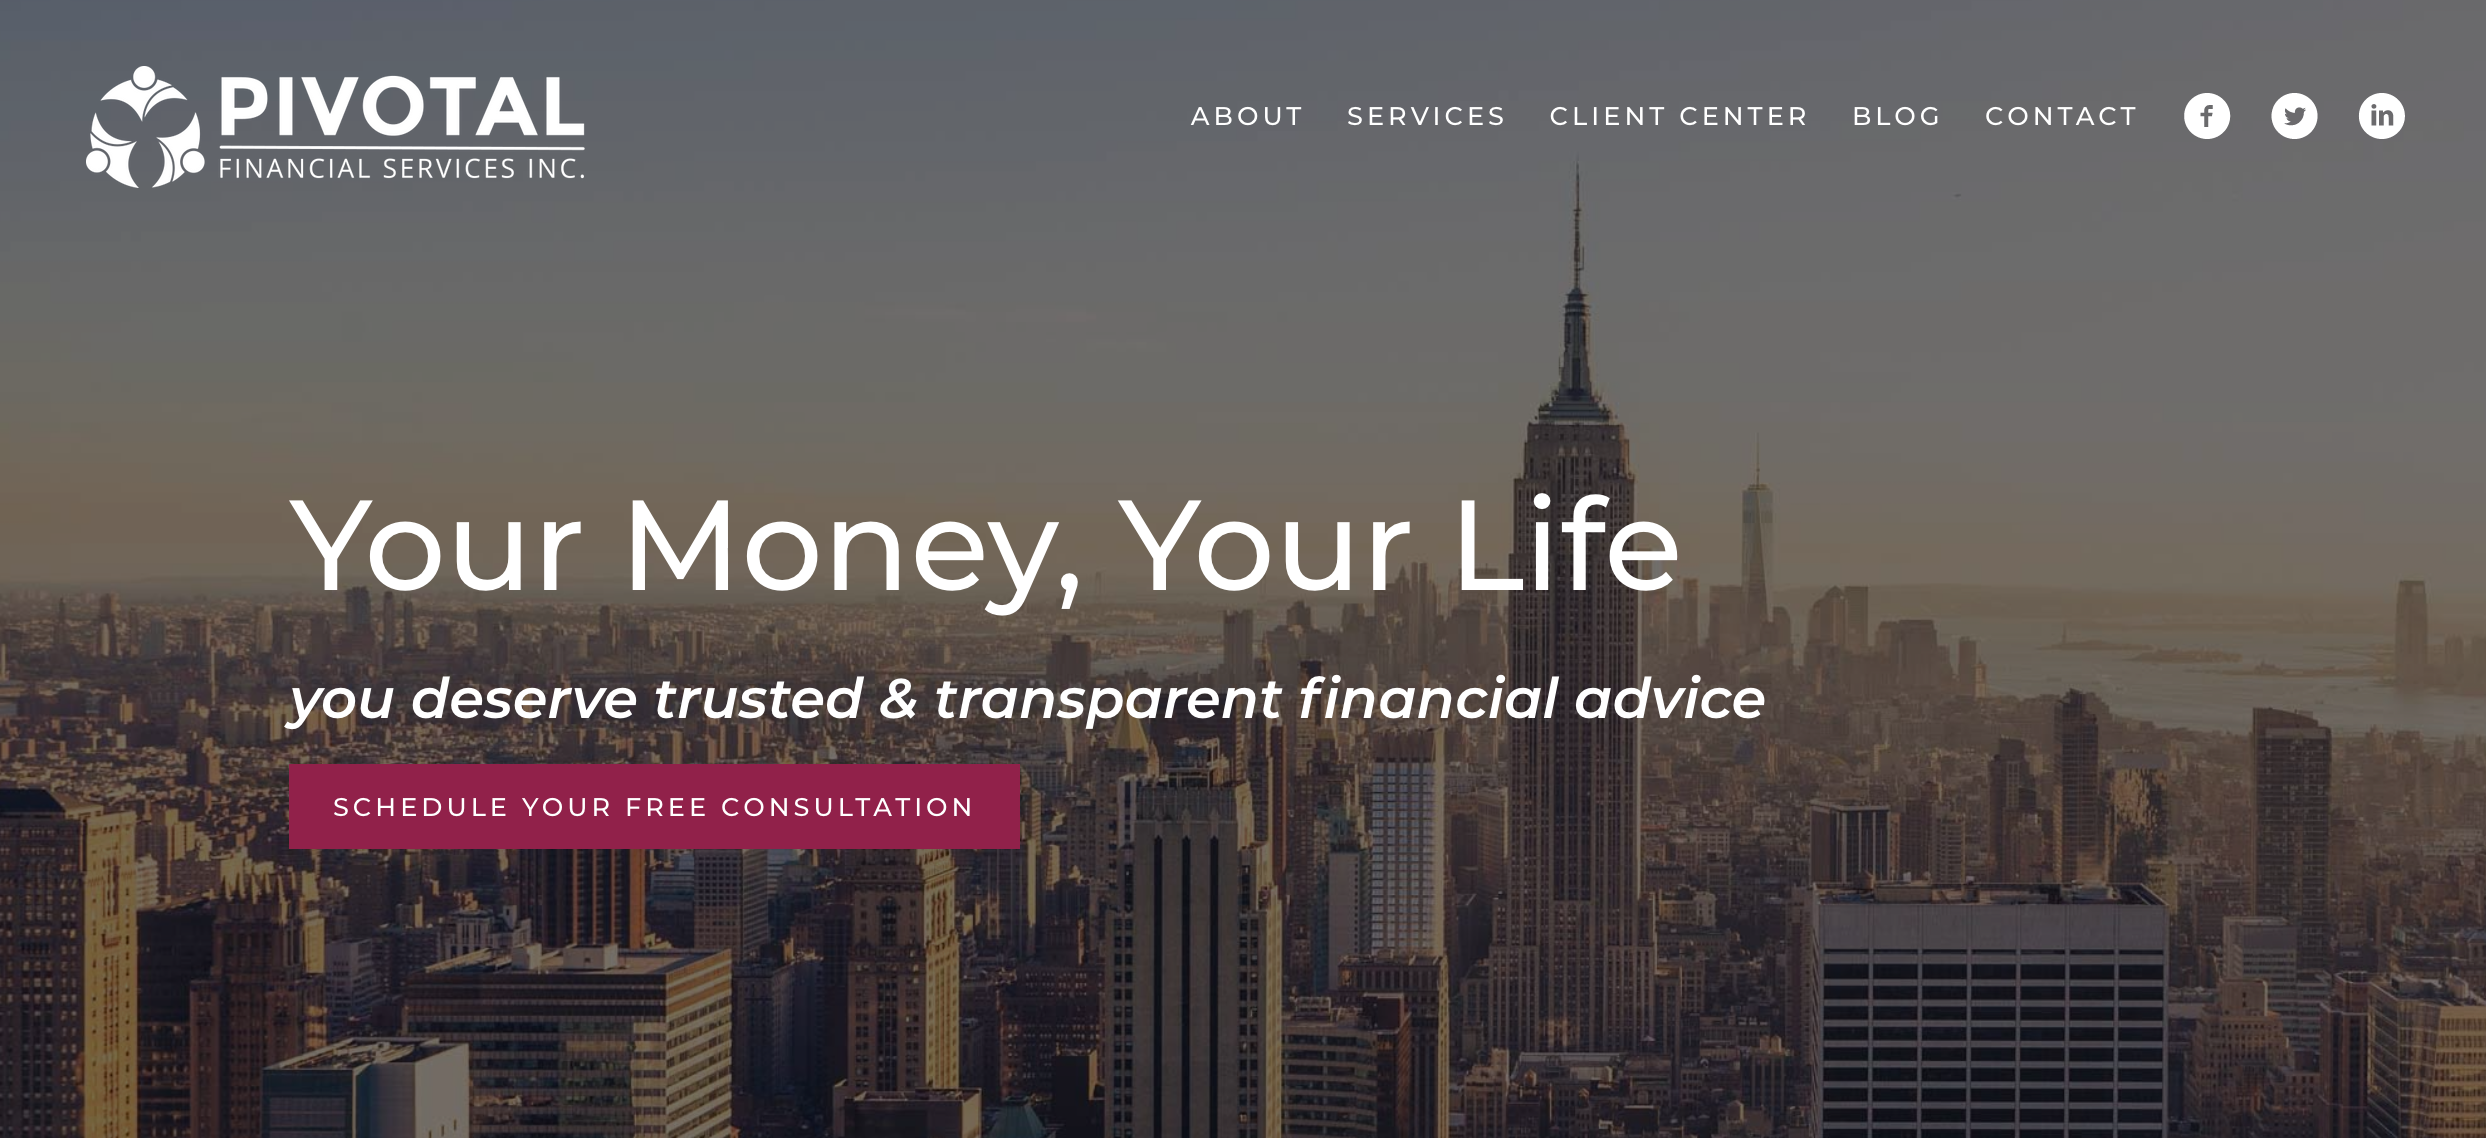 financial advisor website, pivotal financial services inc.